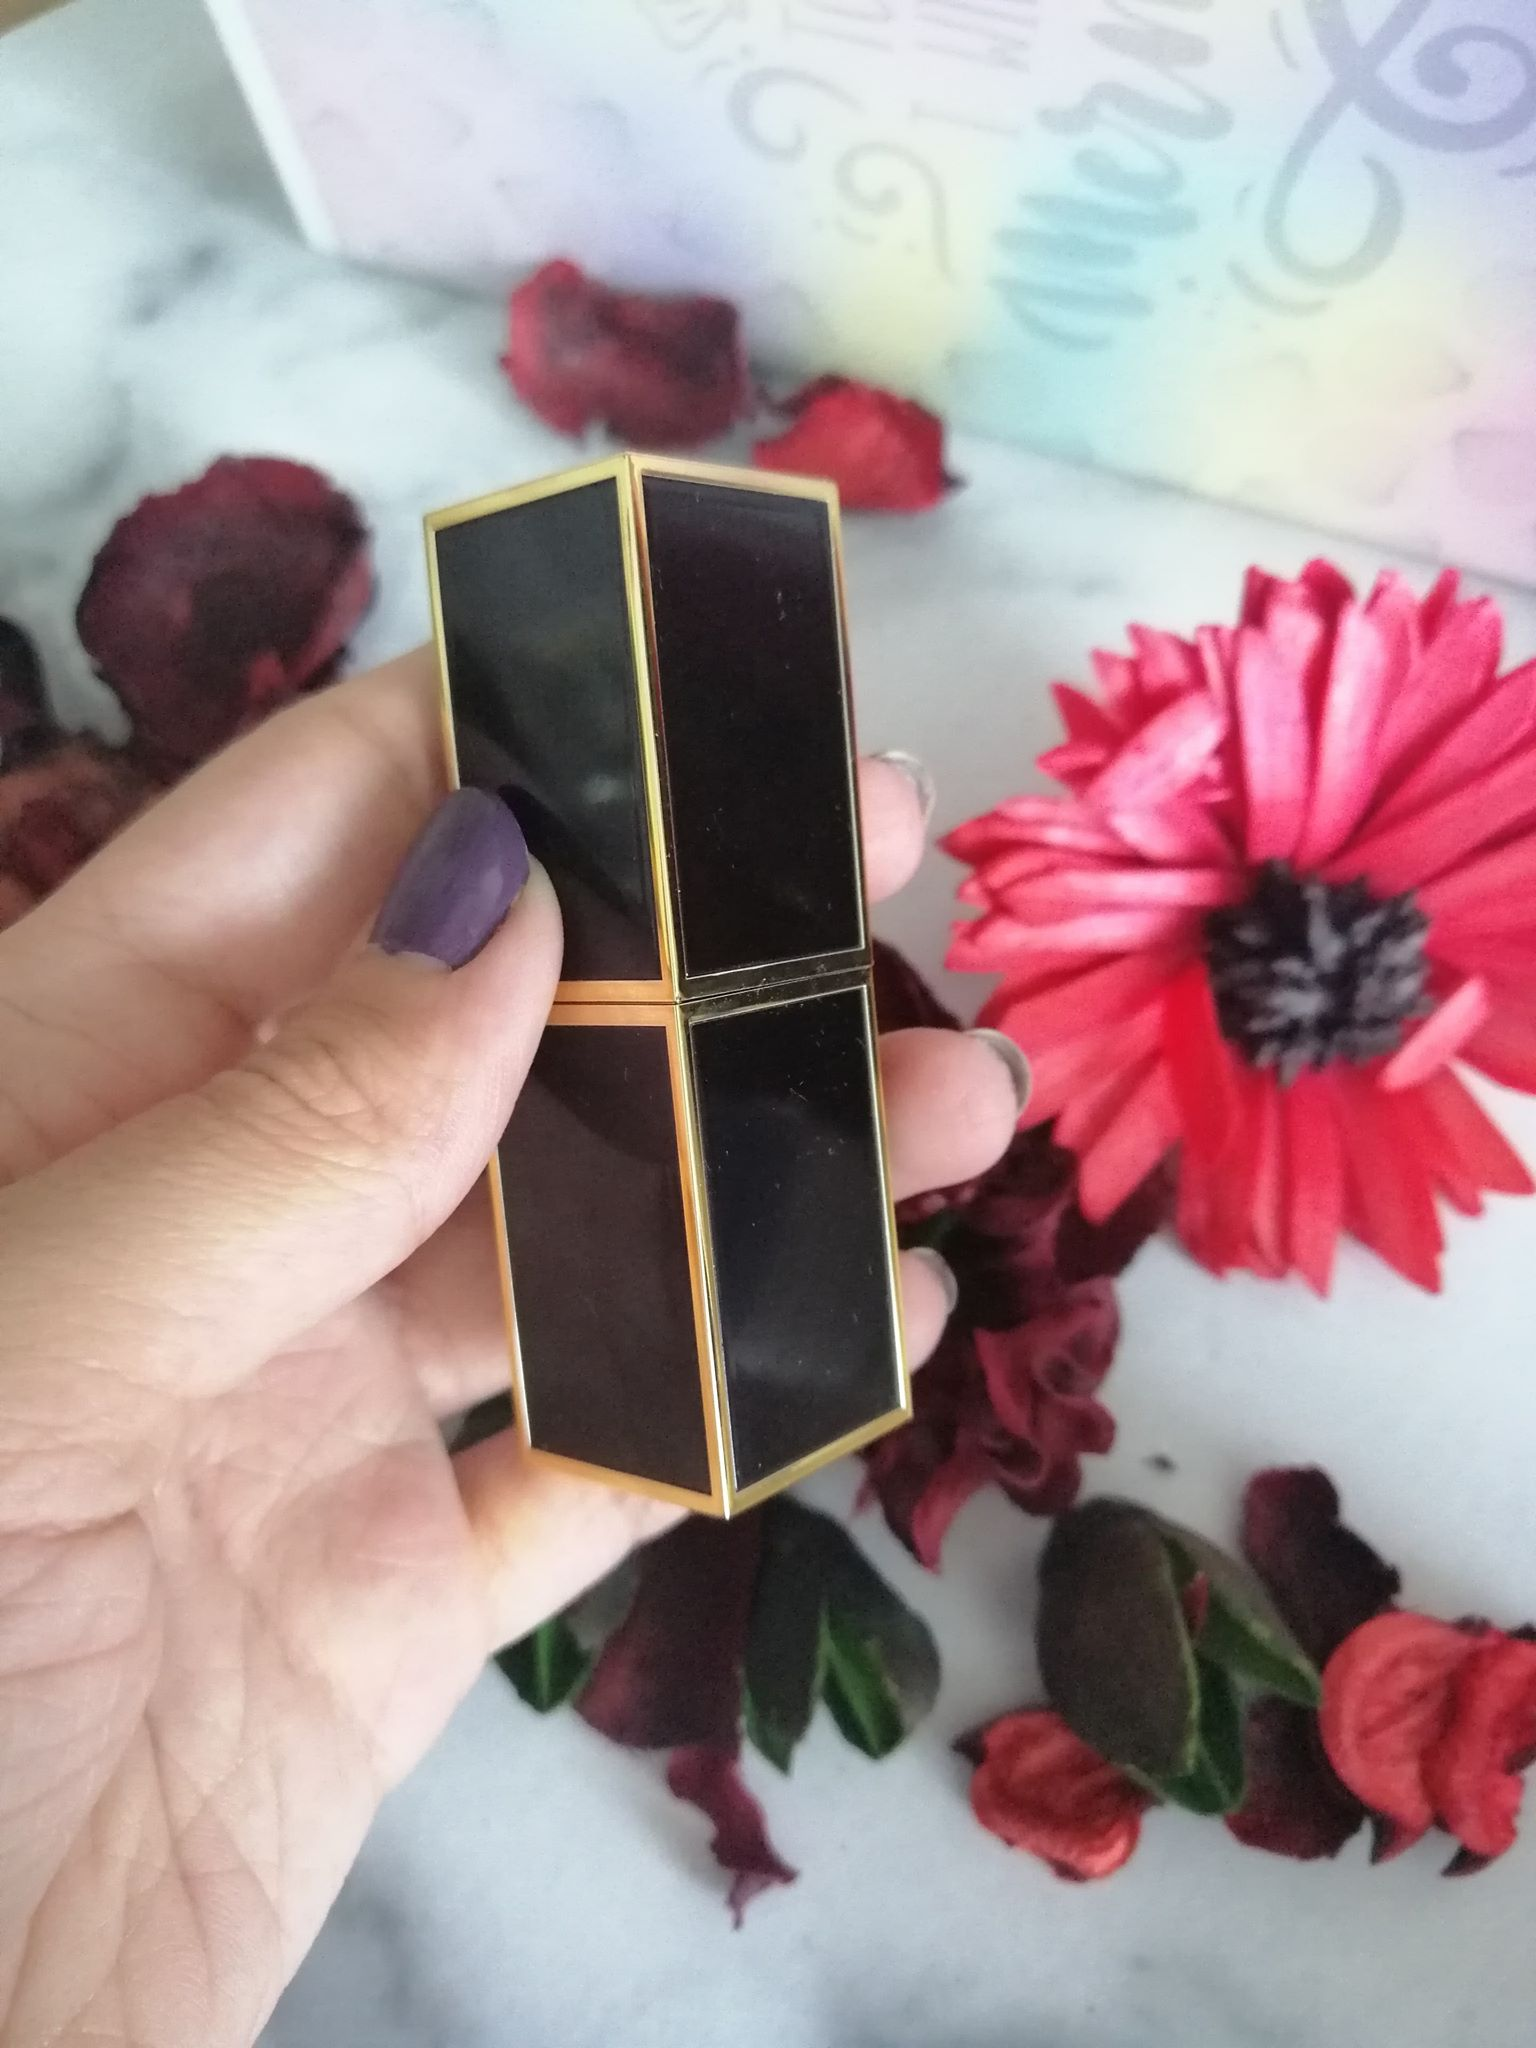 tom ford lipstick packaging